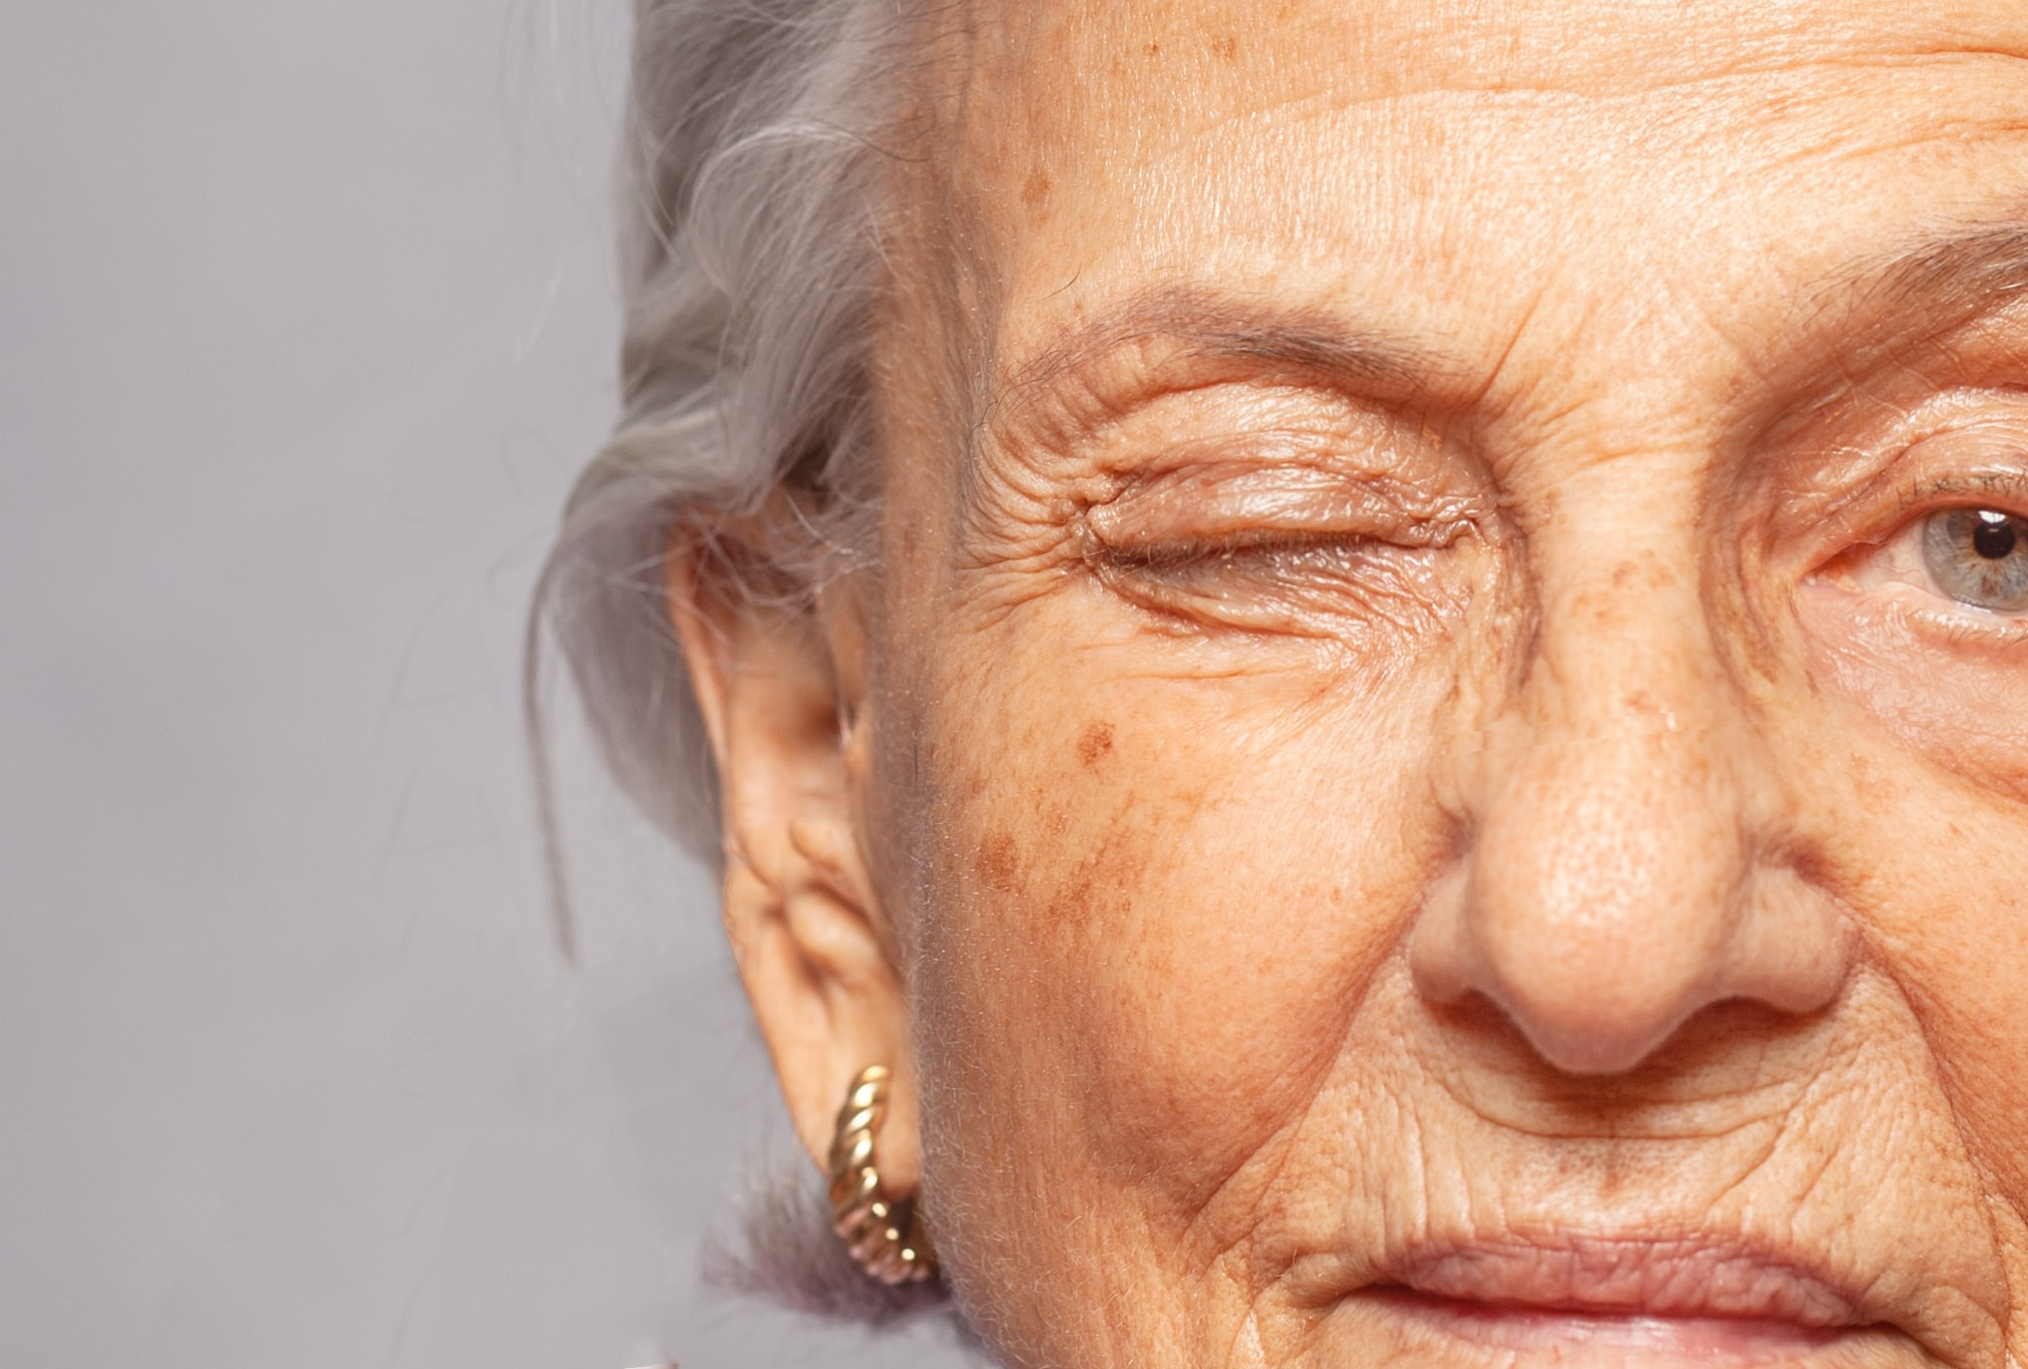 Is Botox Safe To Use With Hashimoto's?